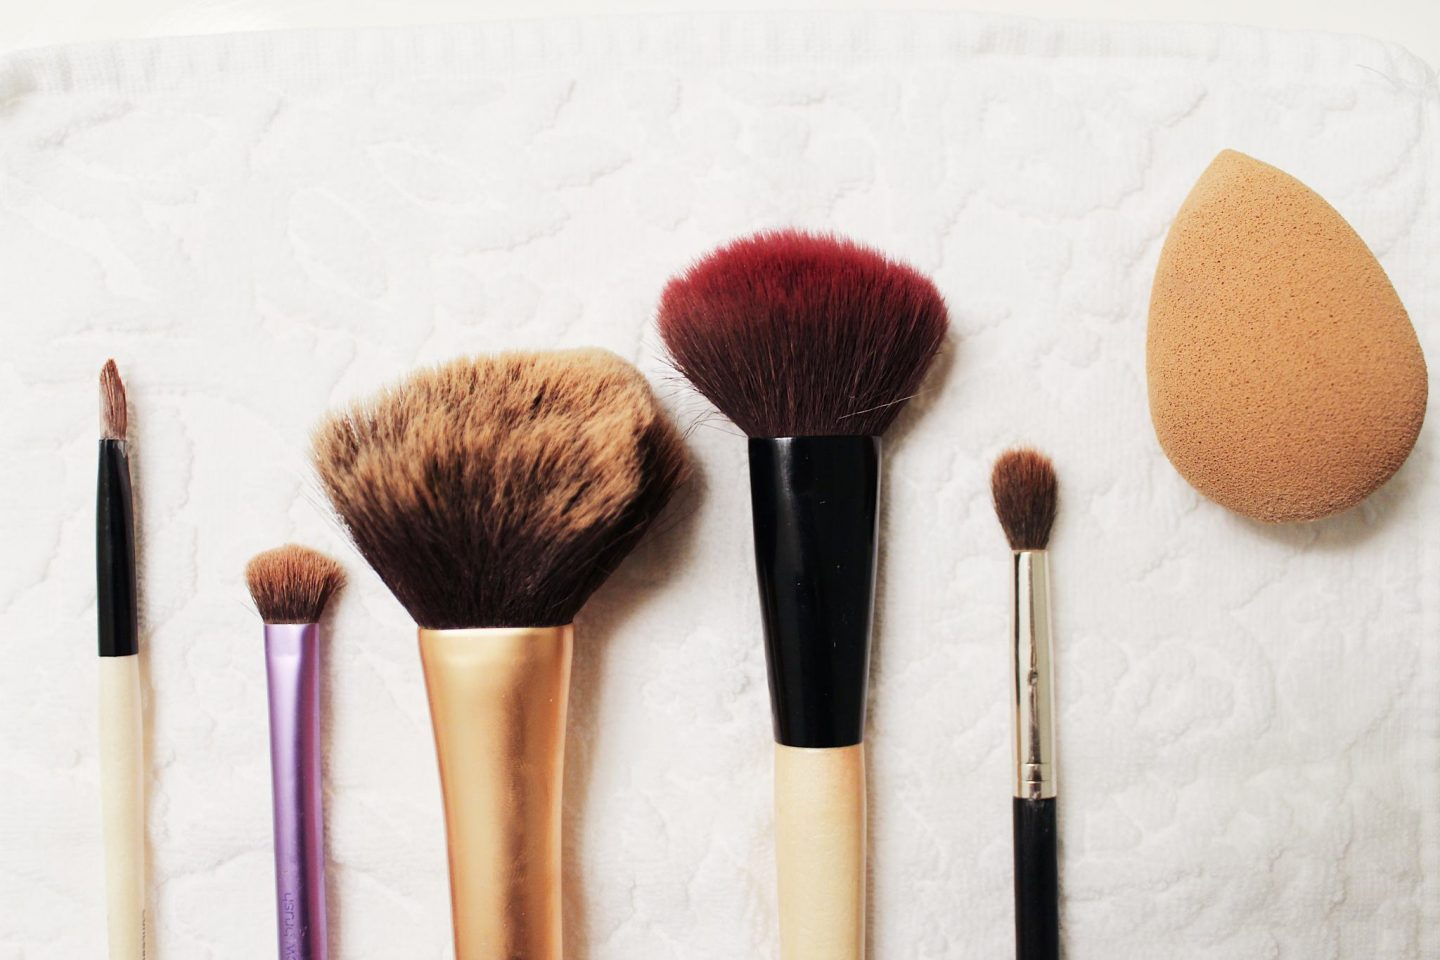 My Everyday Makeup Brushes & How I Clean Them - Ashley Donielle